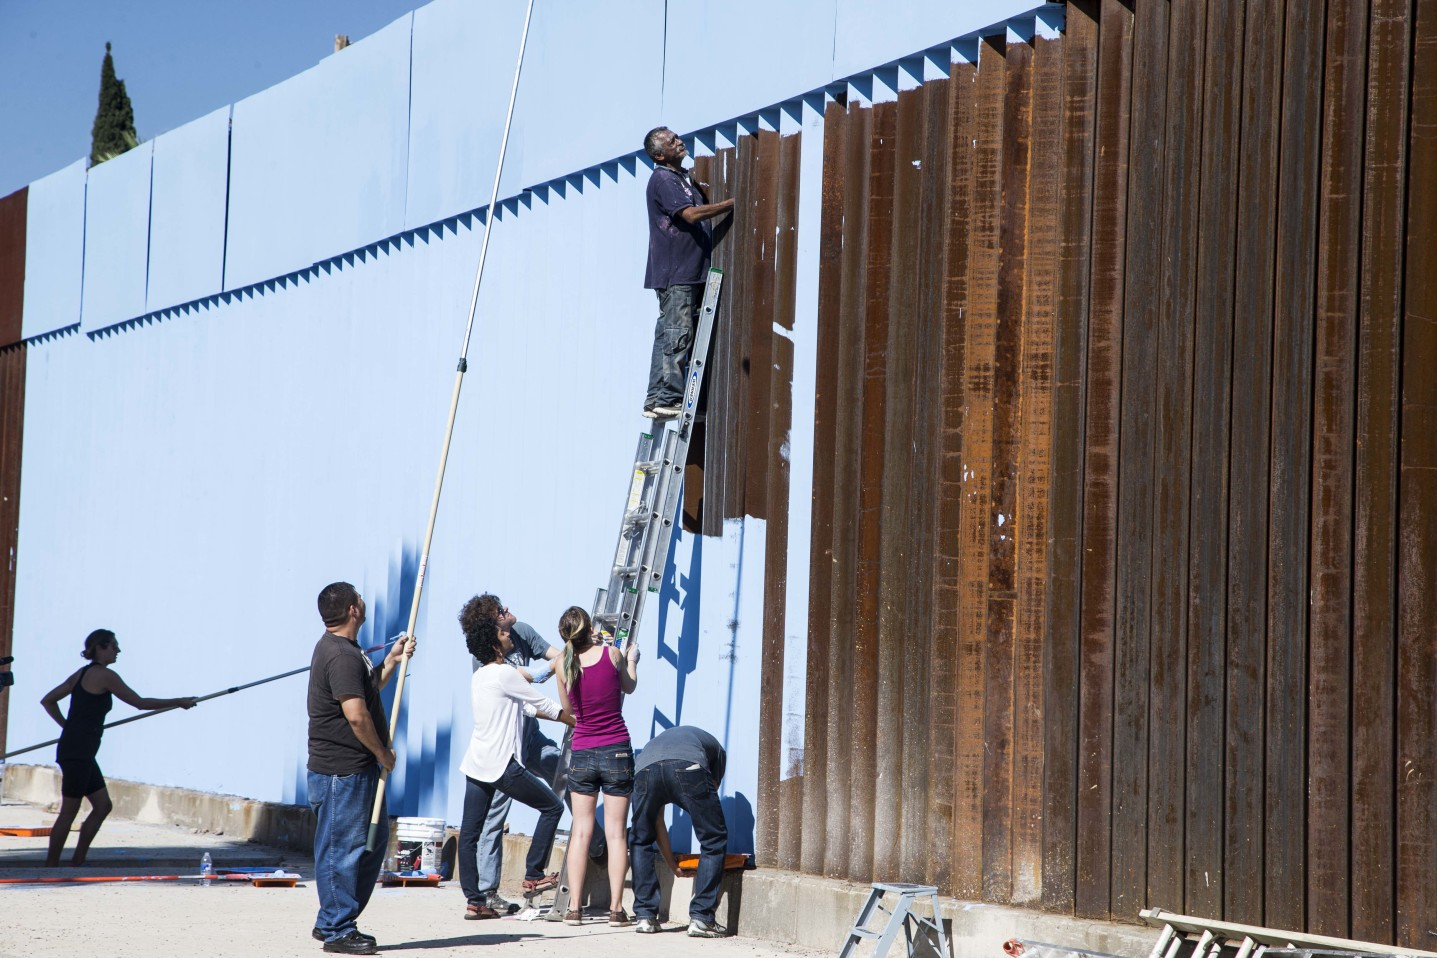 Borrando la Frontera (Erasing the Border)